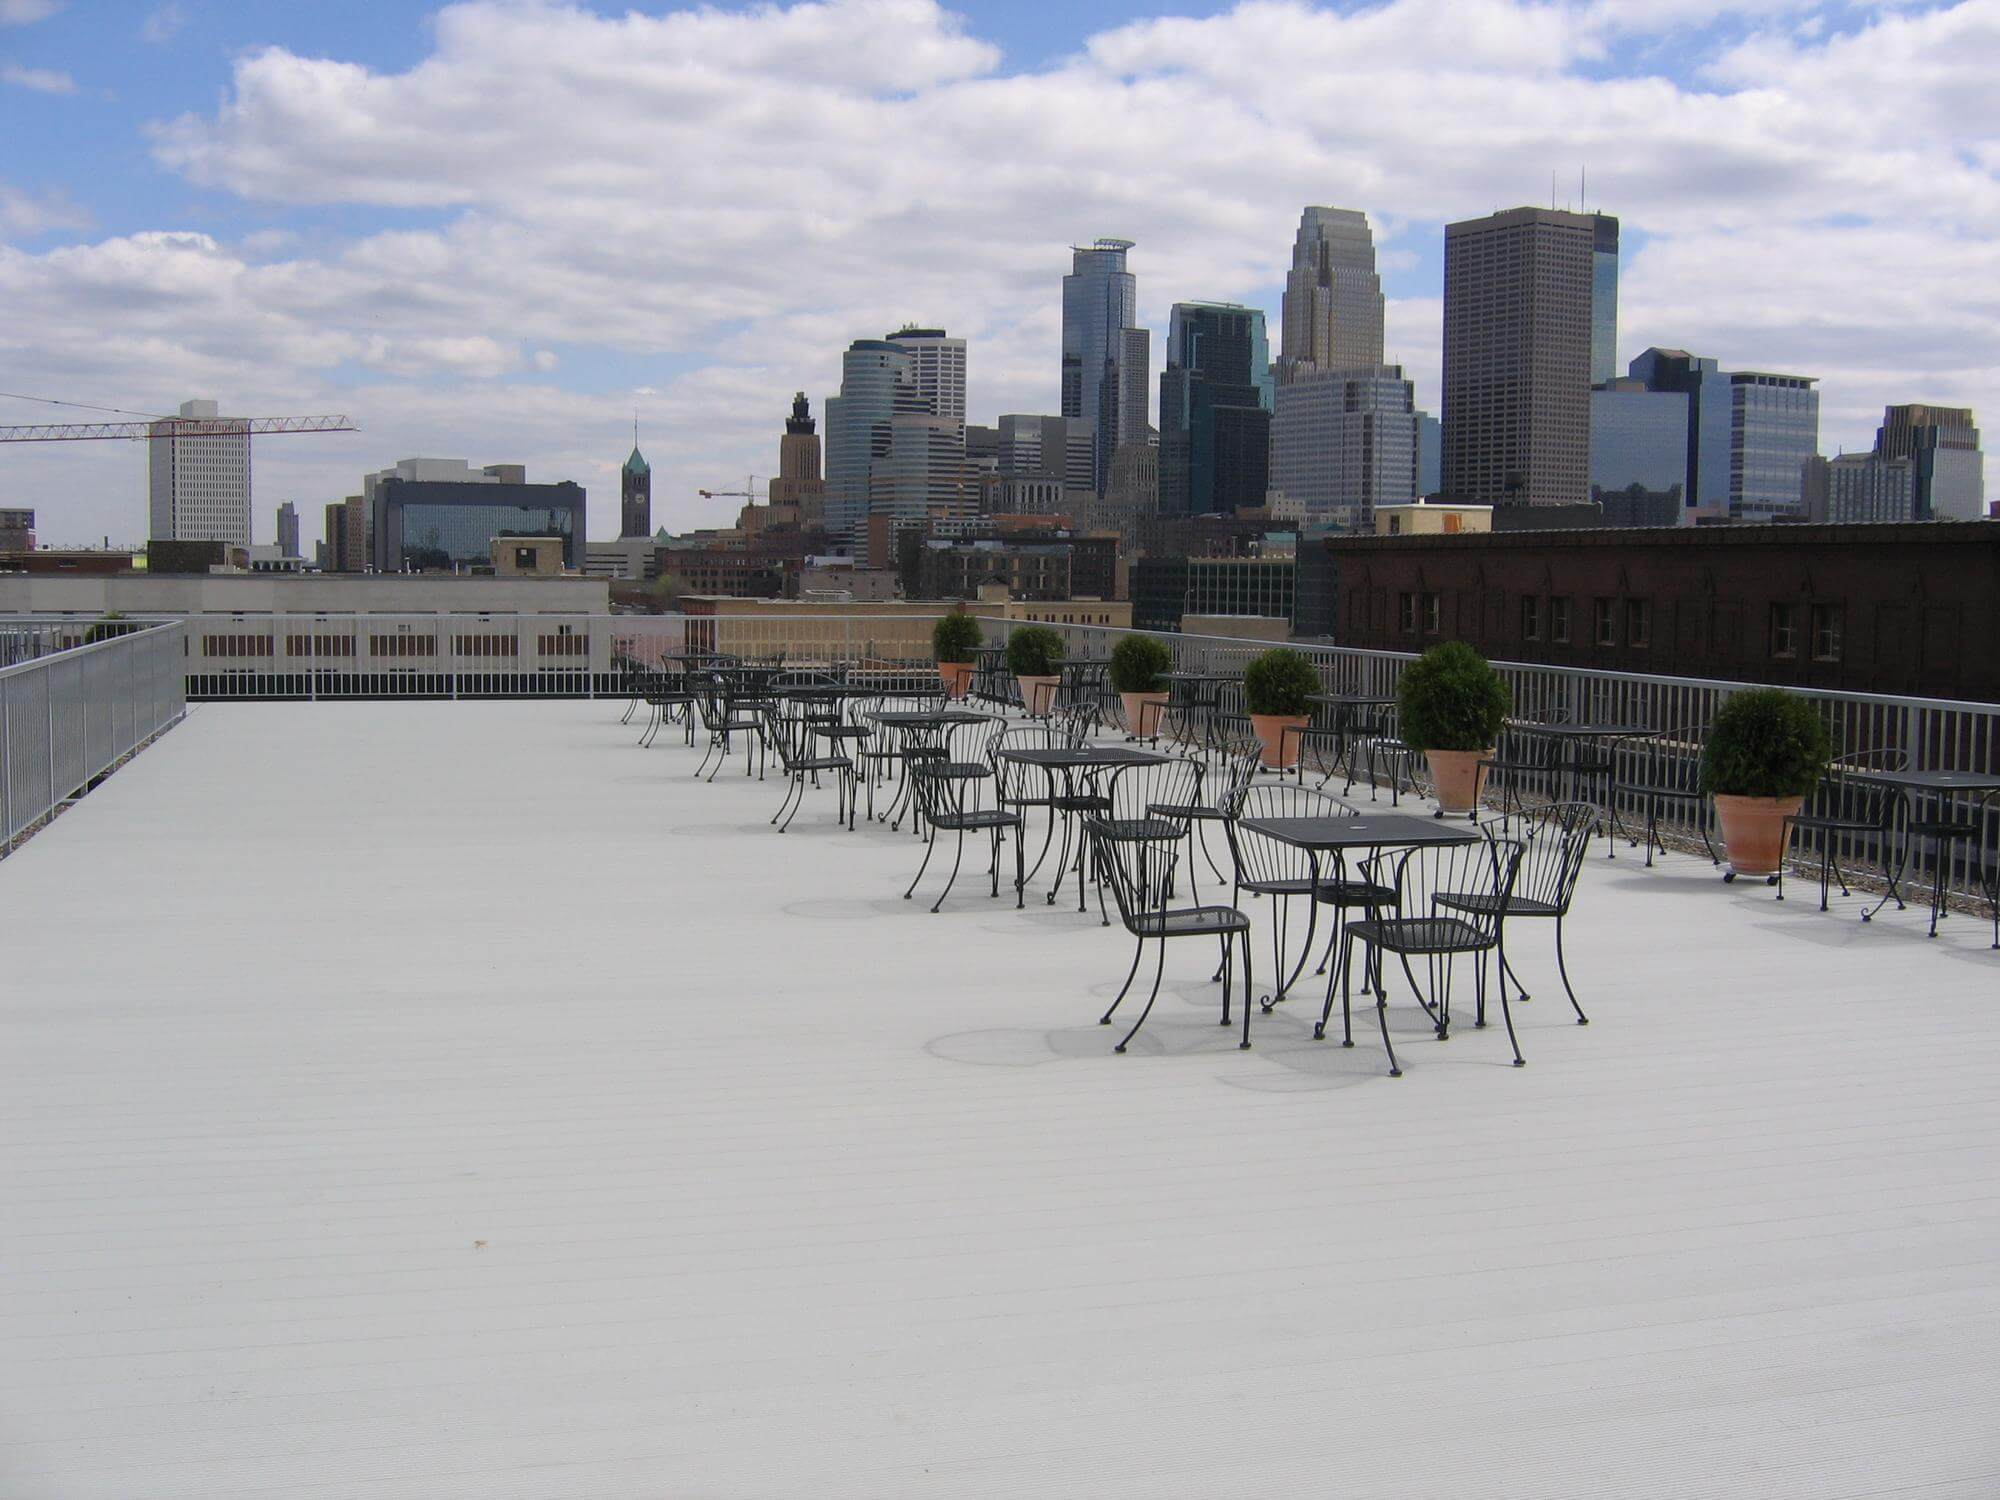 aluminum rooftop decking - ariddek aluminum roof decking for rooftop applications like this deck on roof